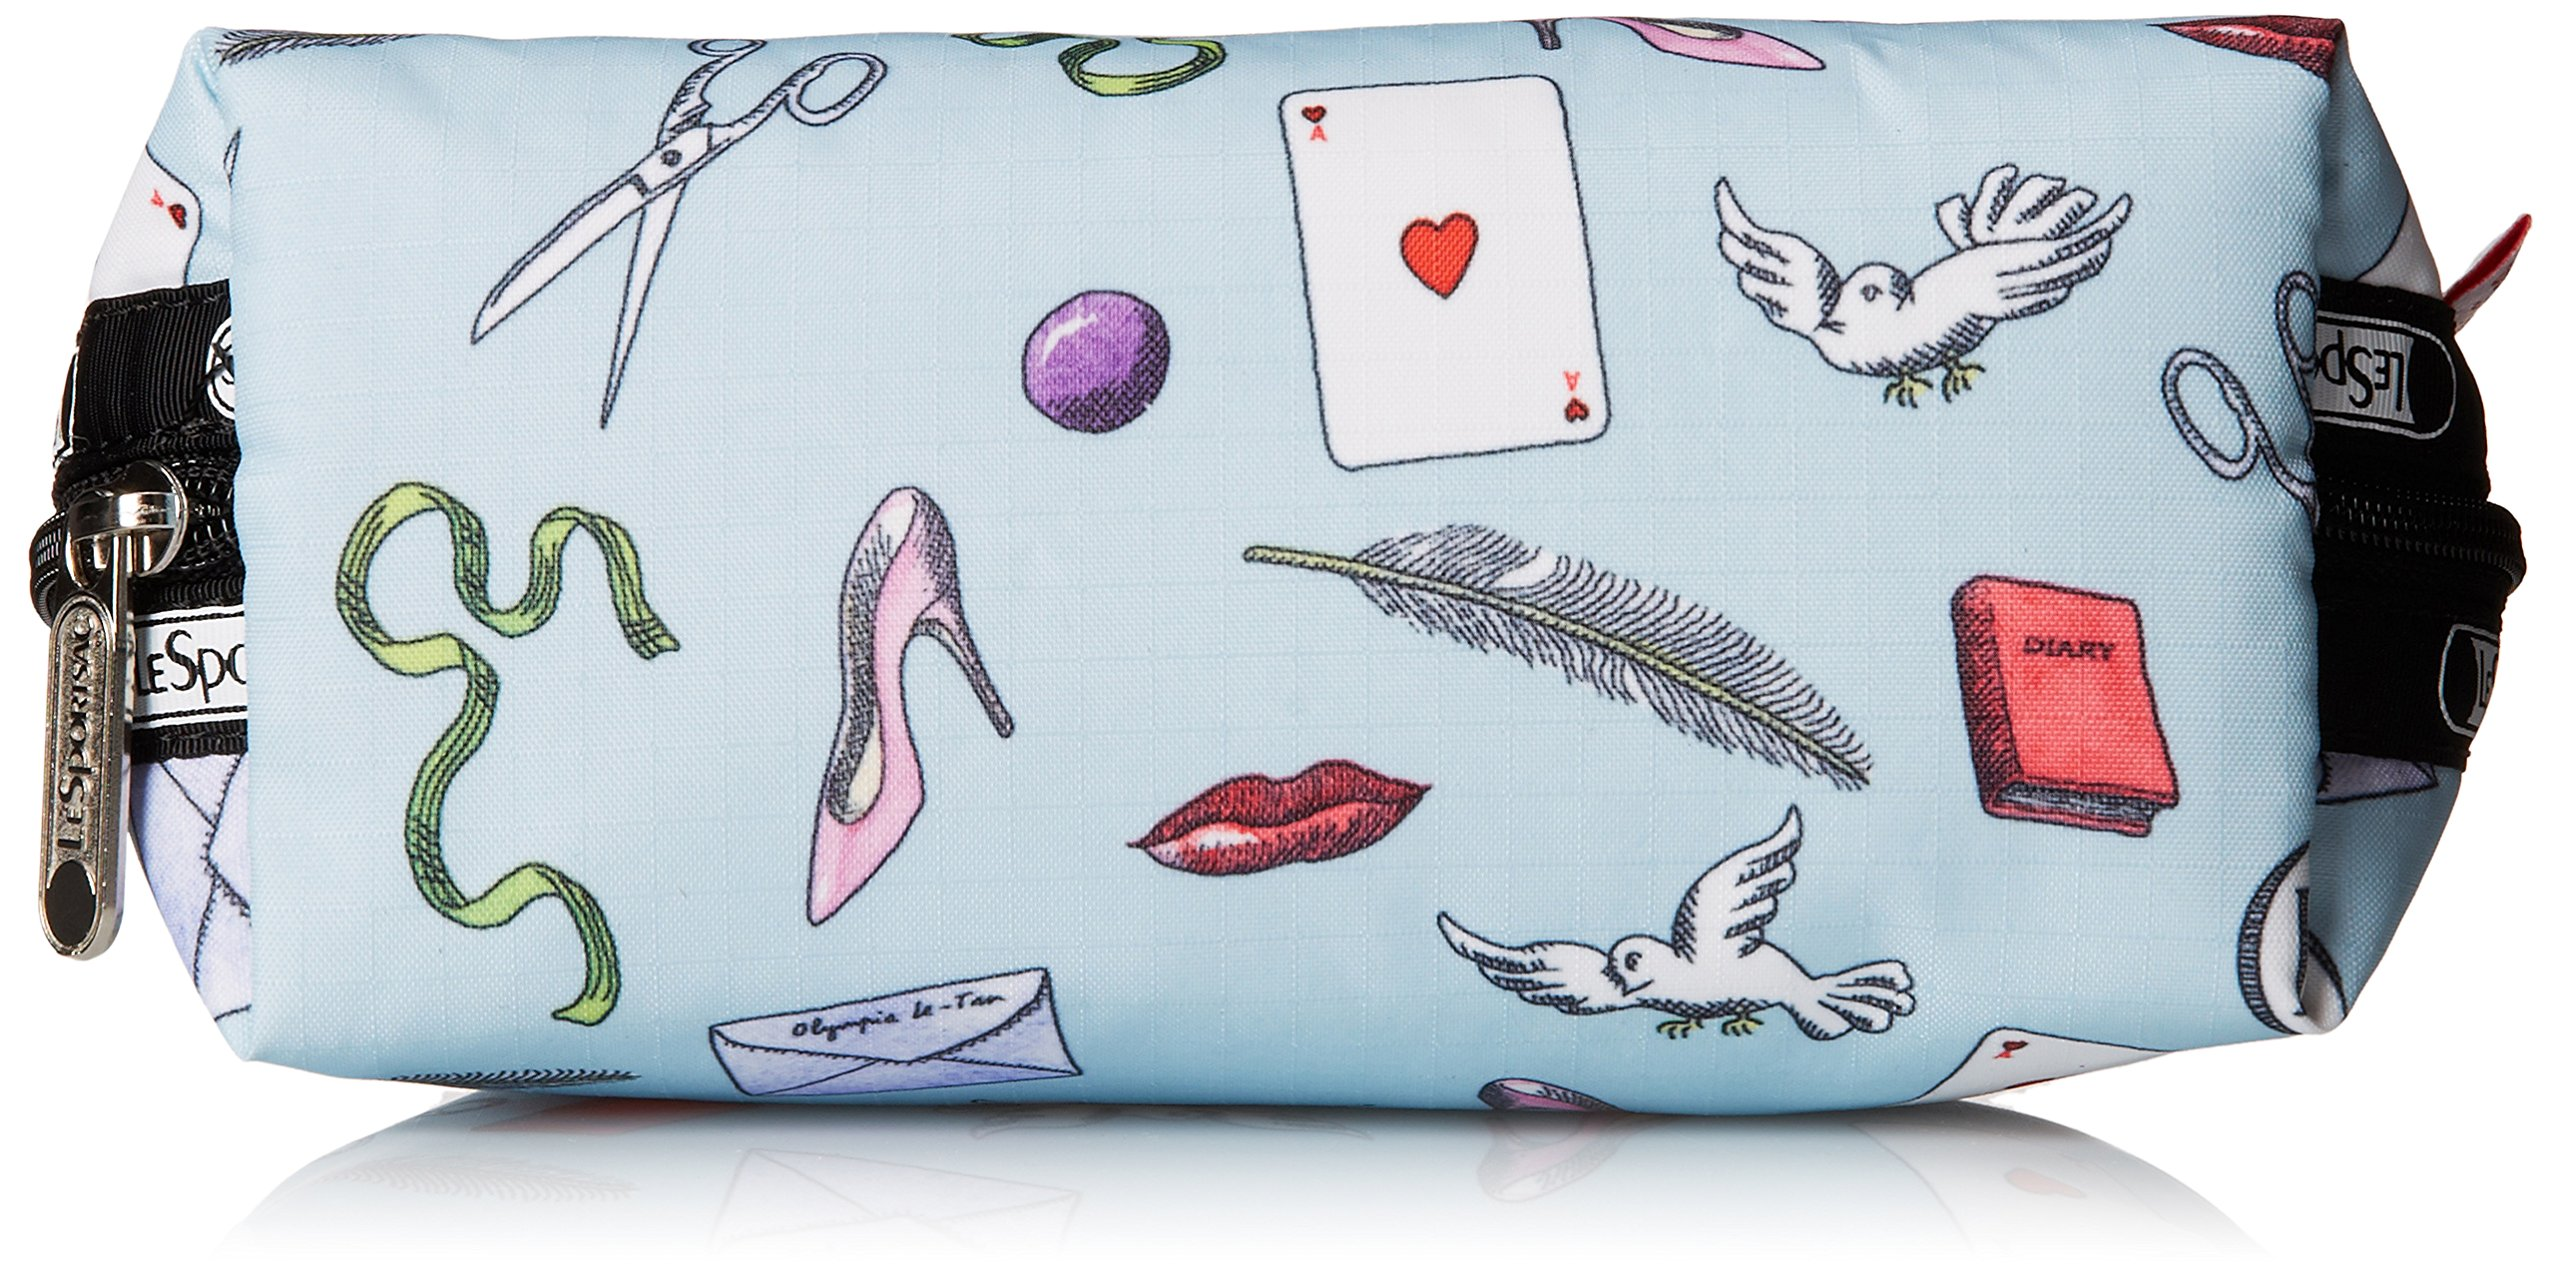 LeSportsac Medium Dome Cosmetic Case, Love Letters Blue, One Size by LeSportsac (Image #4)